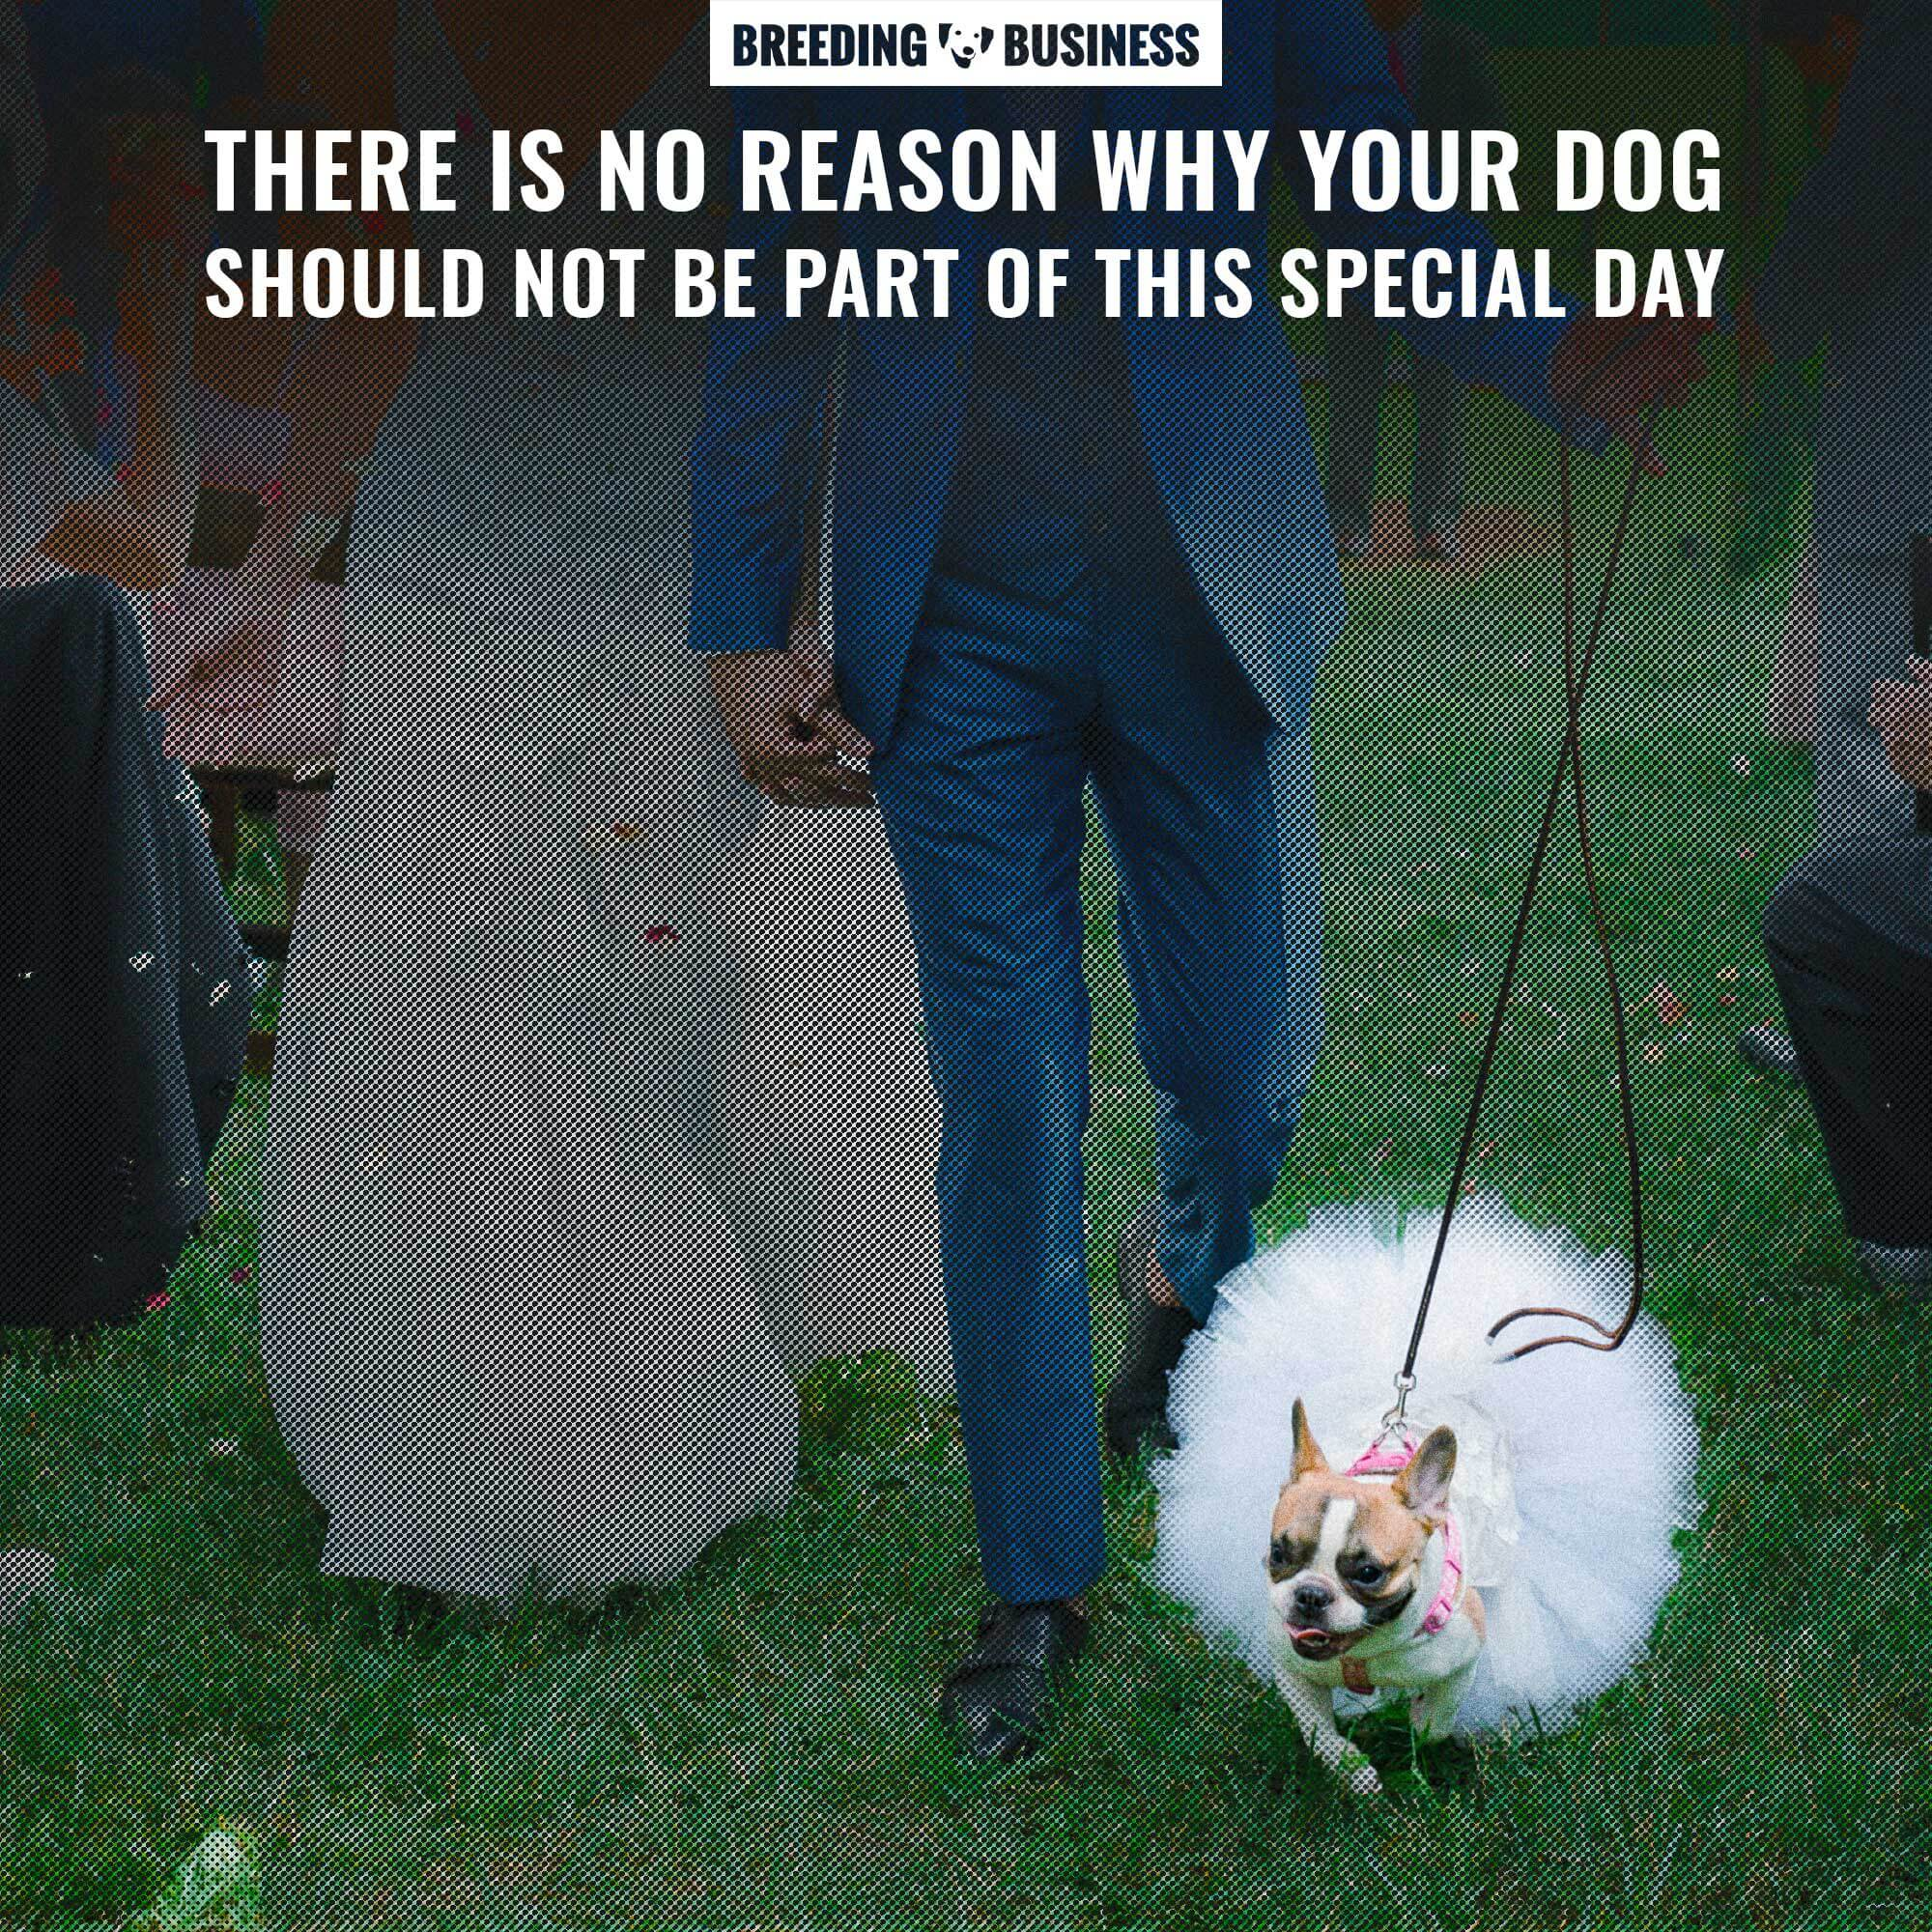 Dress up your dog for your wedding day!